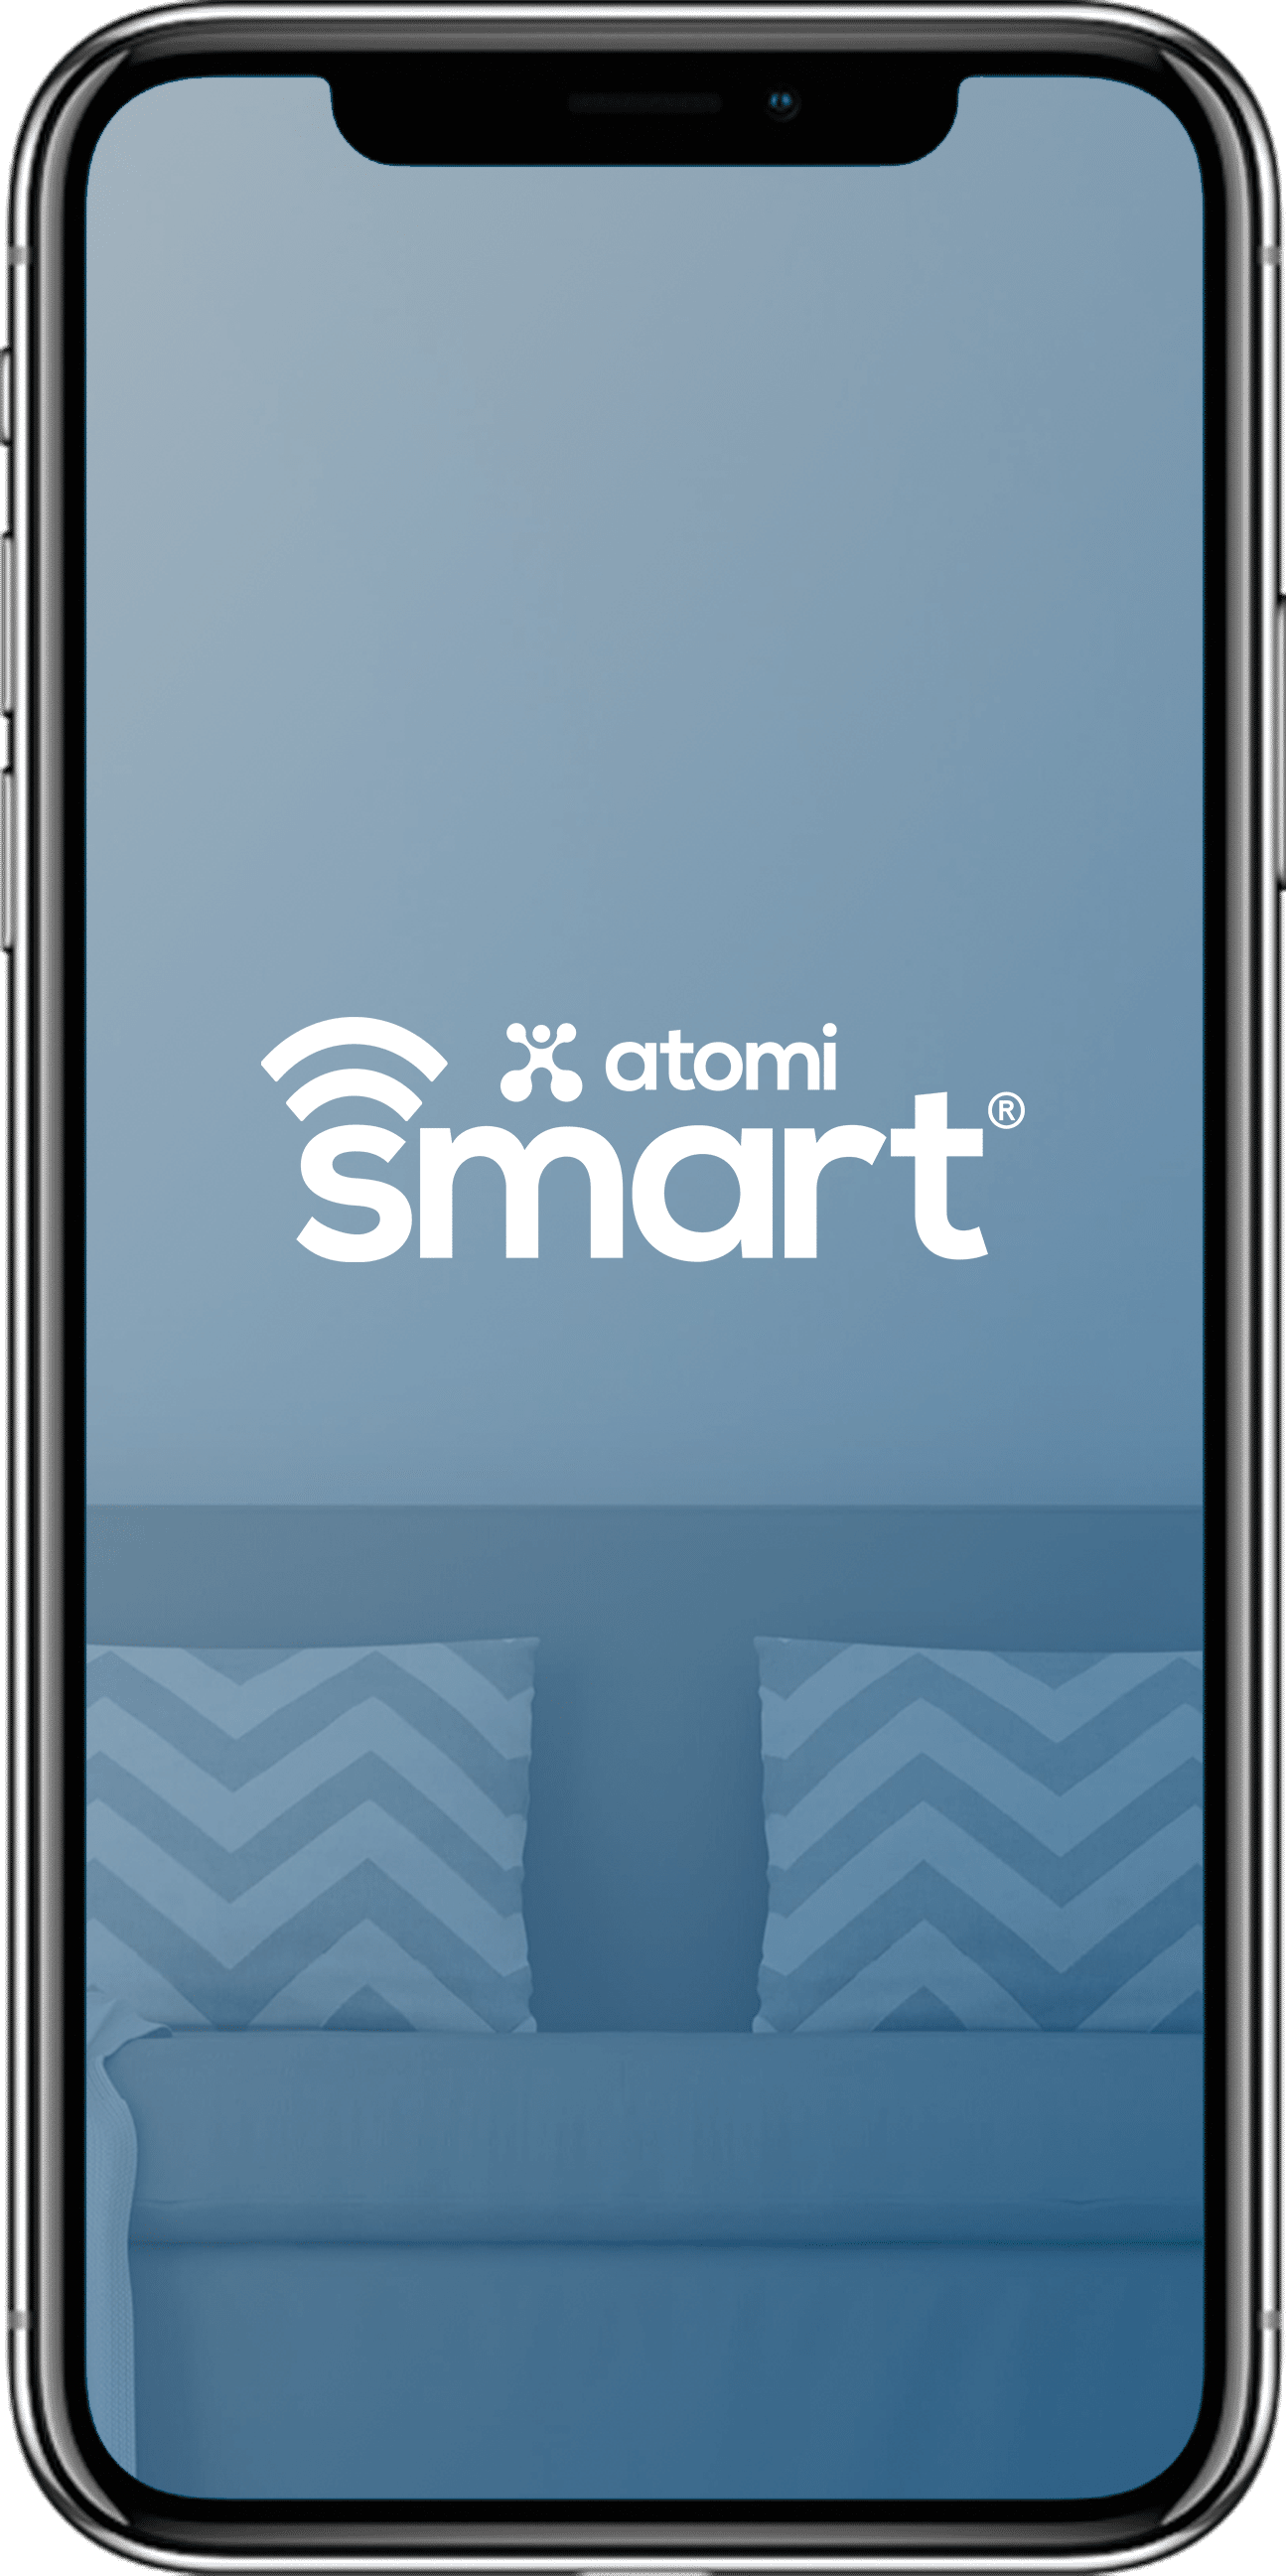 Download the highly rated atomi smart app, available on IOS and Android.